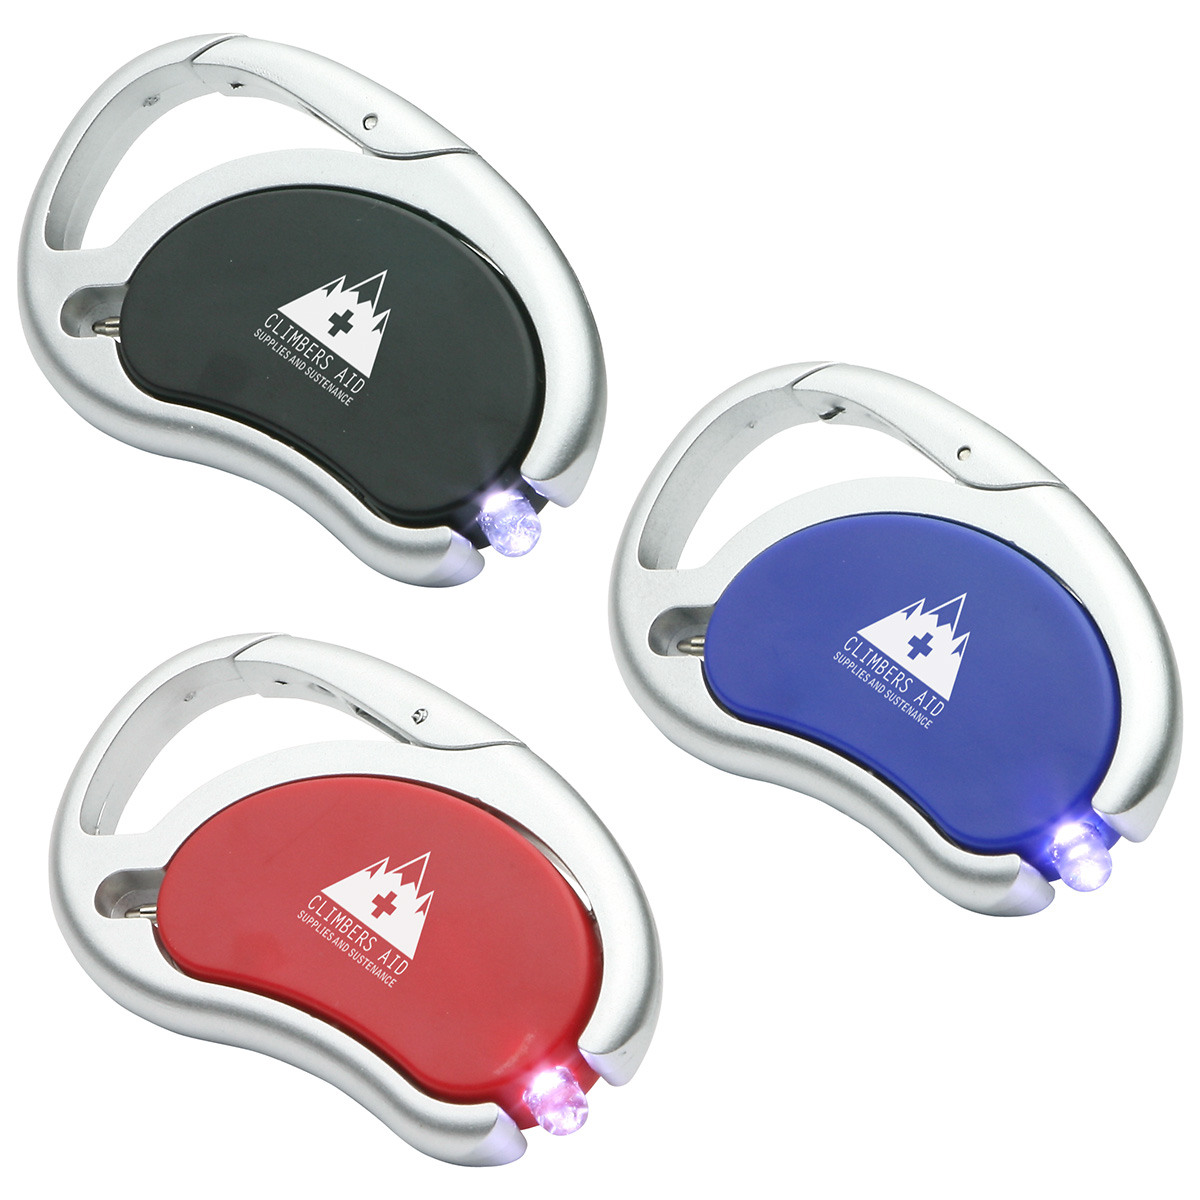 Carabiner Swivel Light & Pen, WLT-LP08 - 1 Colour Imprint